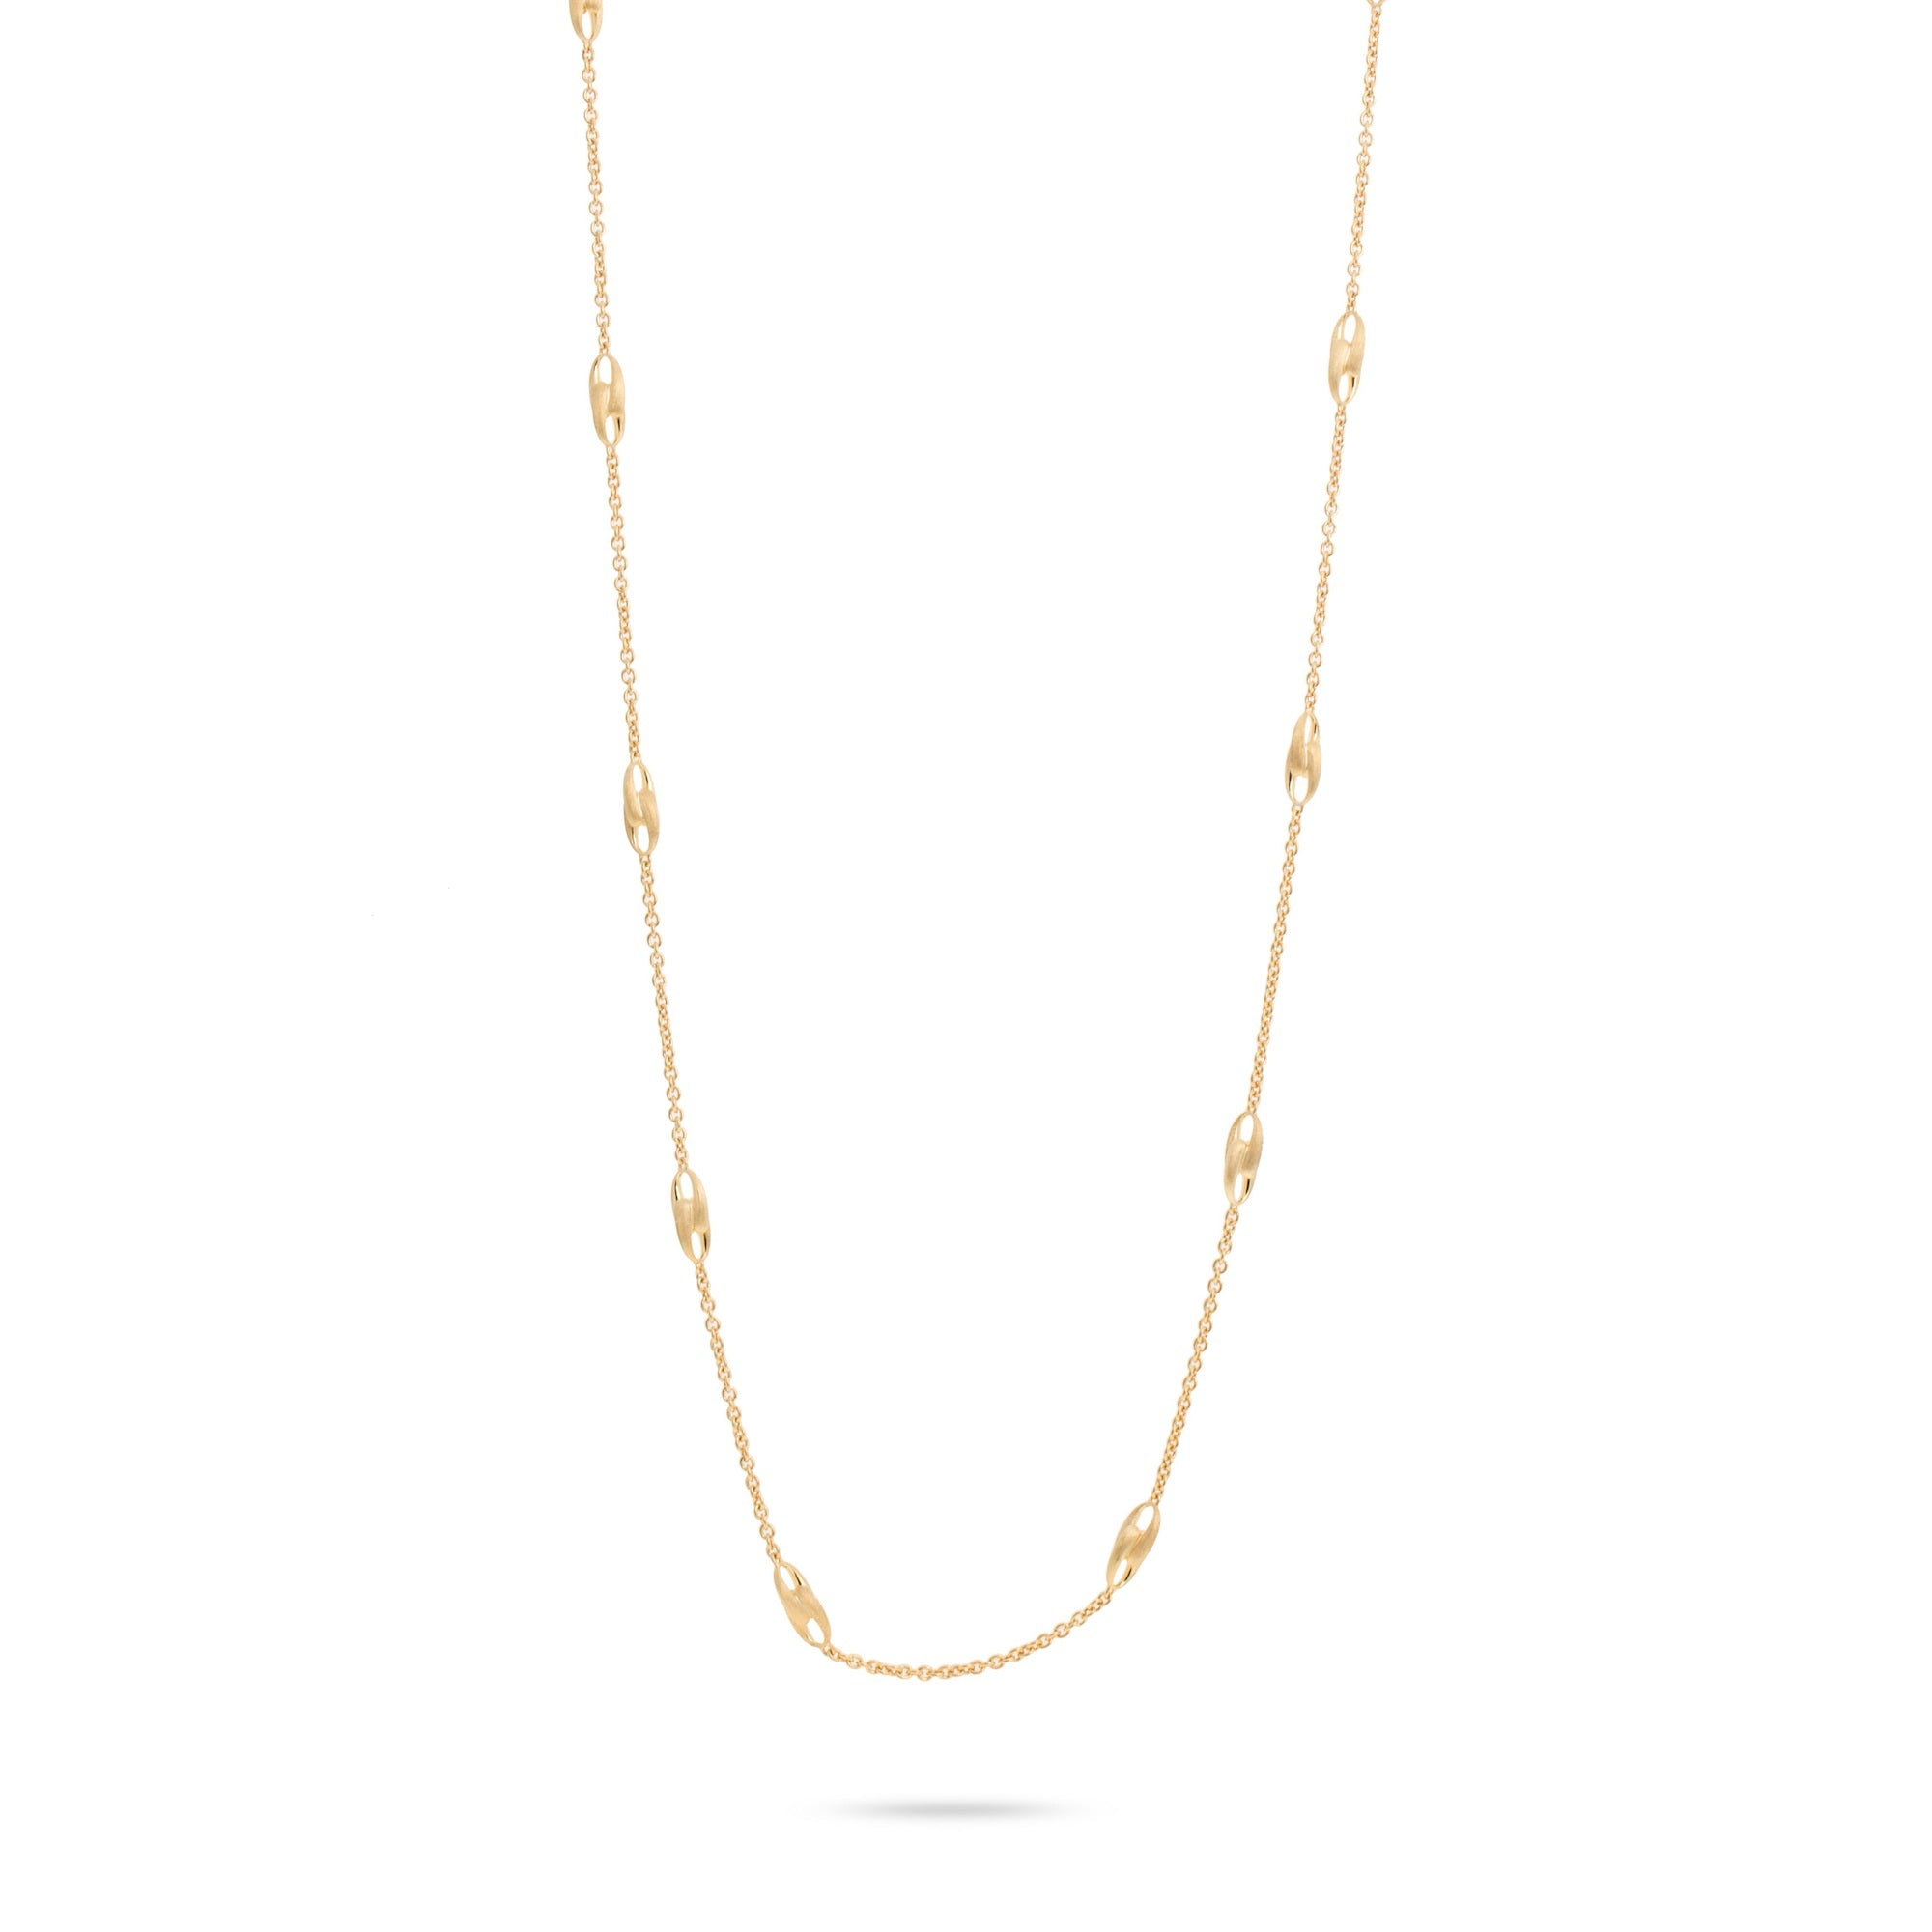 18K Yellow Gold Long Link Necklace